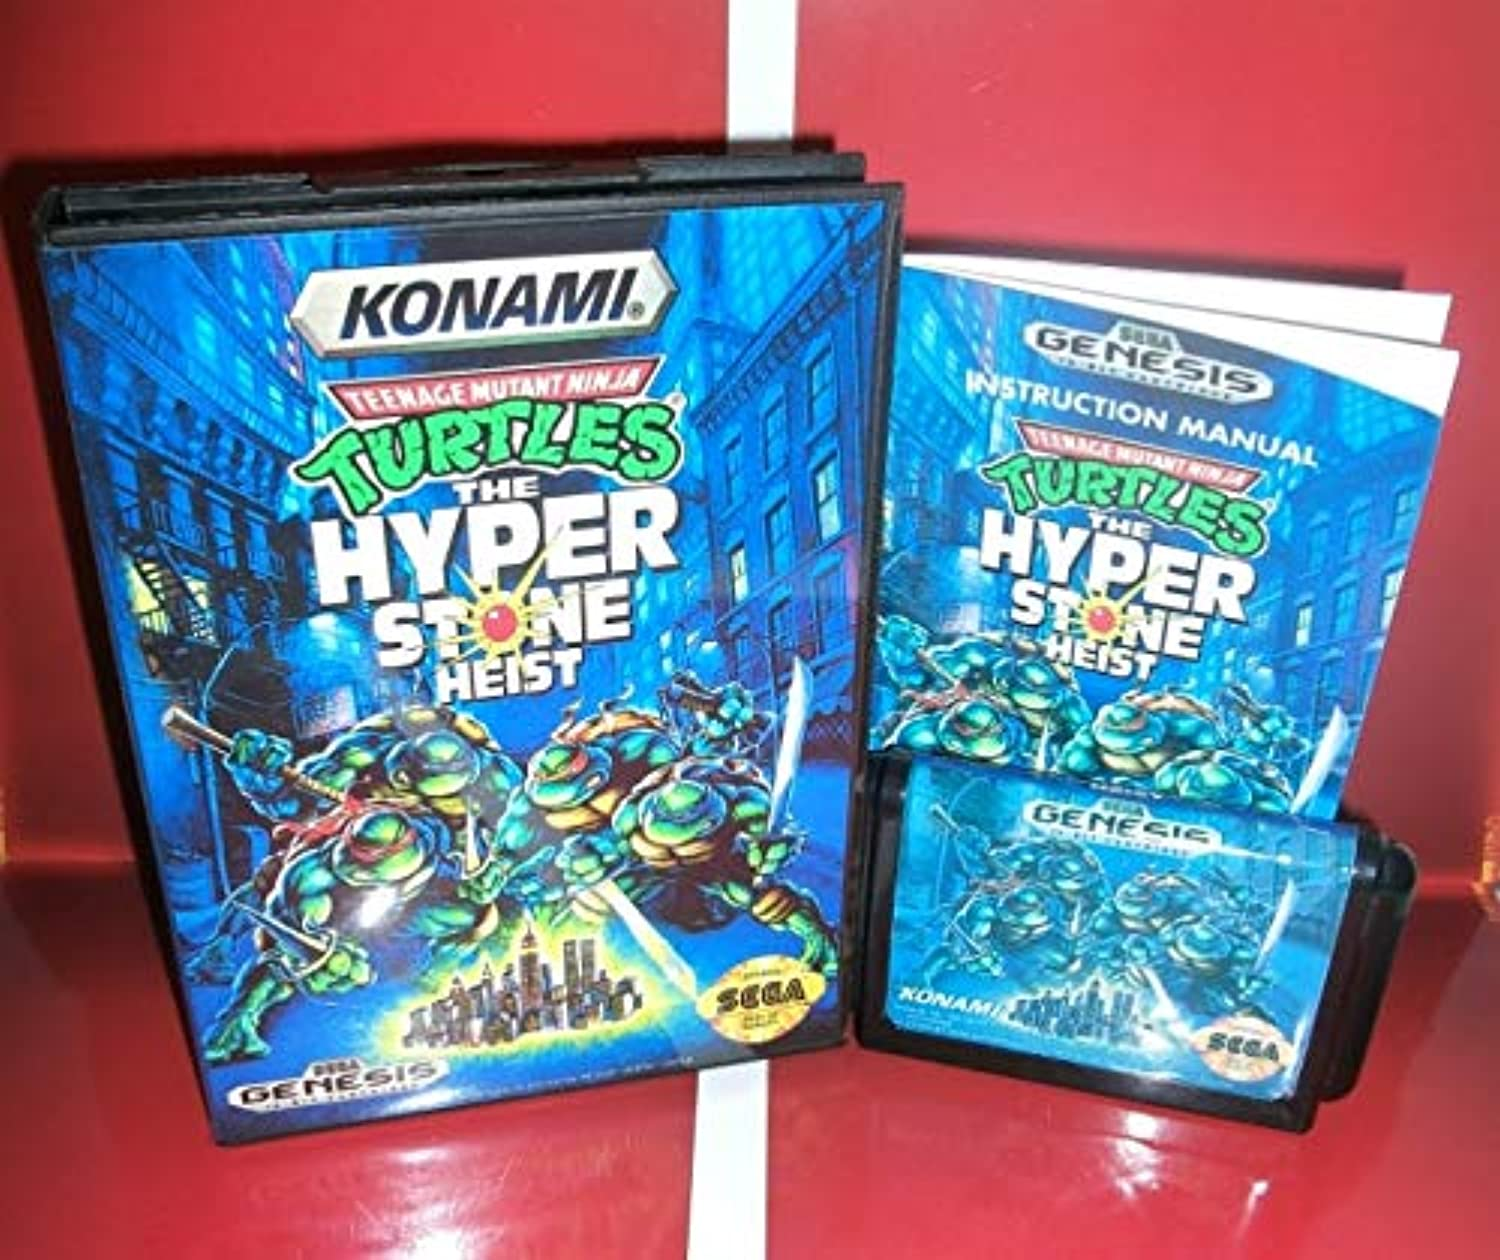 ValueSmartToys  Teenage Mutant Ninja Turtles The Hyper Stone Heist US Cover with Box and Manual for MegaDrive Video Game Console 16 bit MD Card